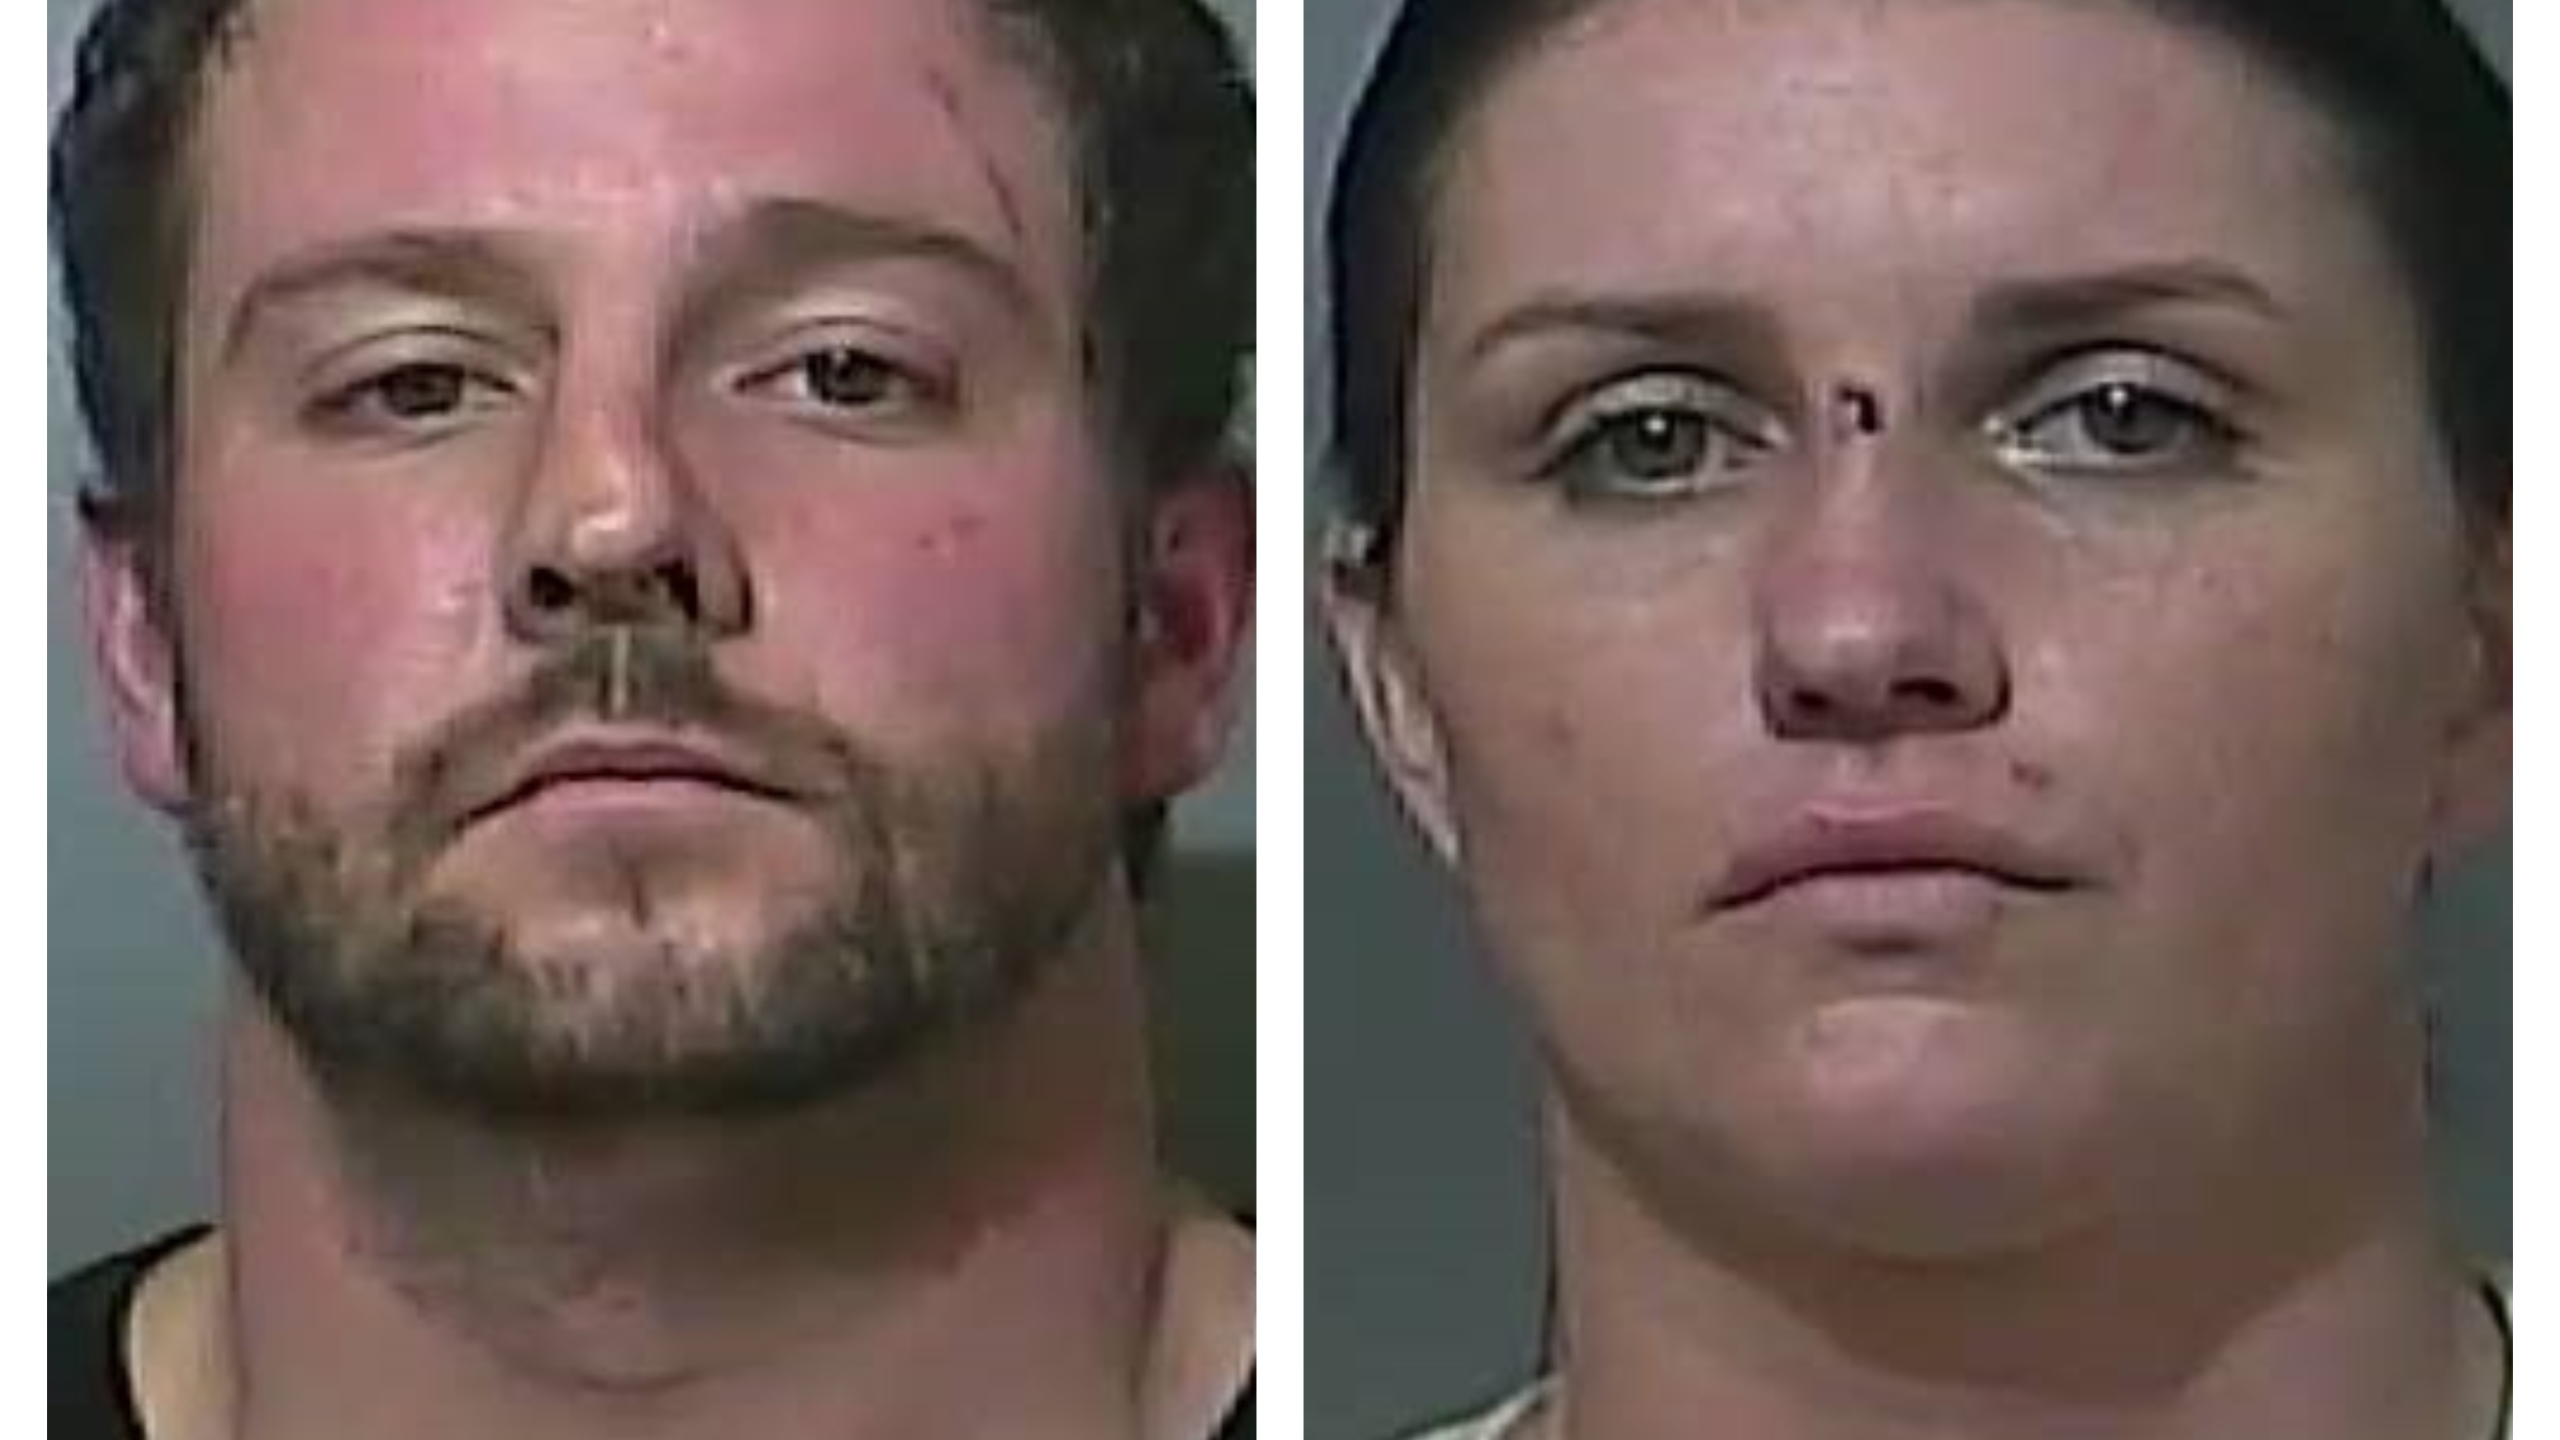 Matthew Beeler, Morgan Colbert, from Vigo County Jail